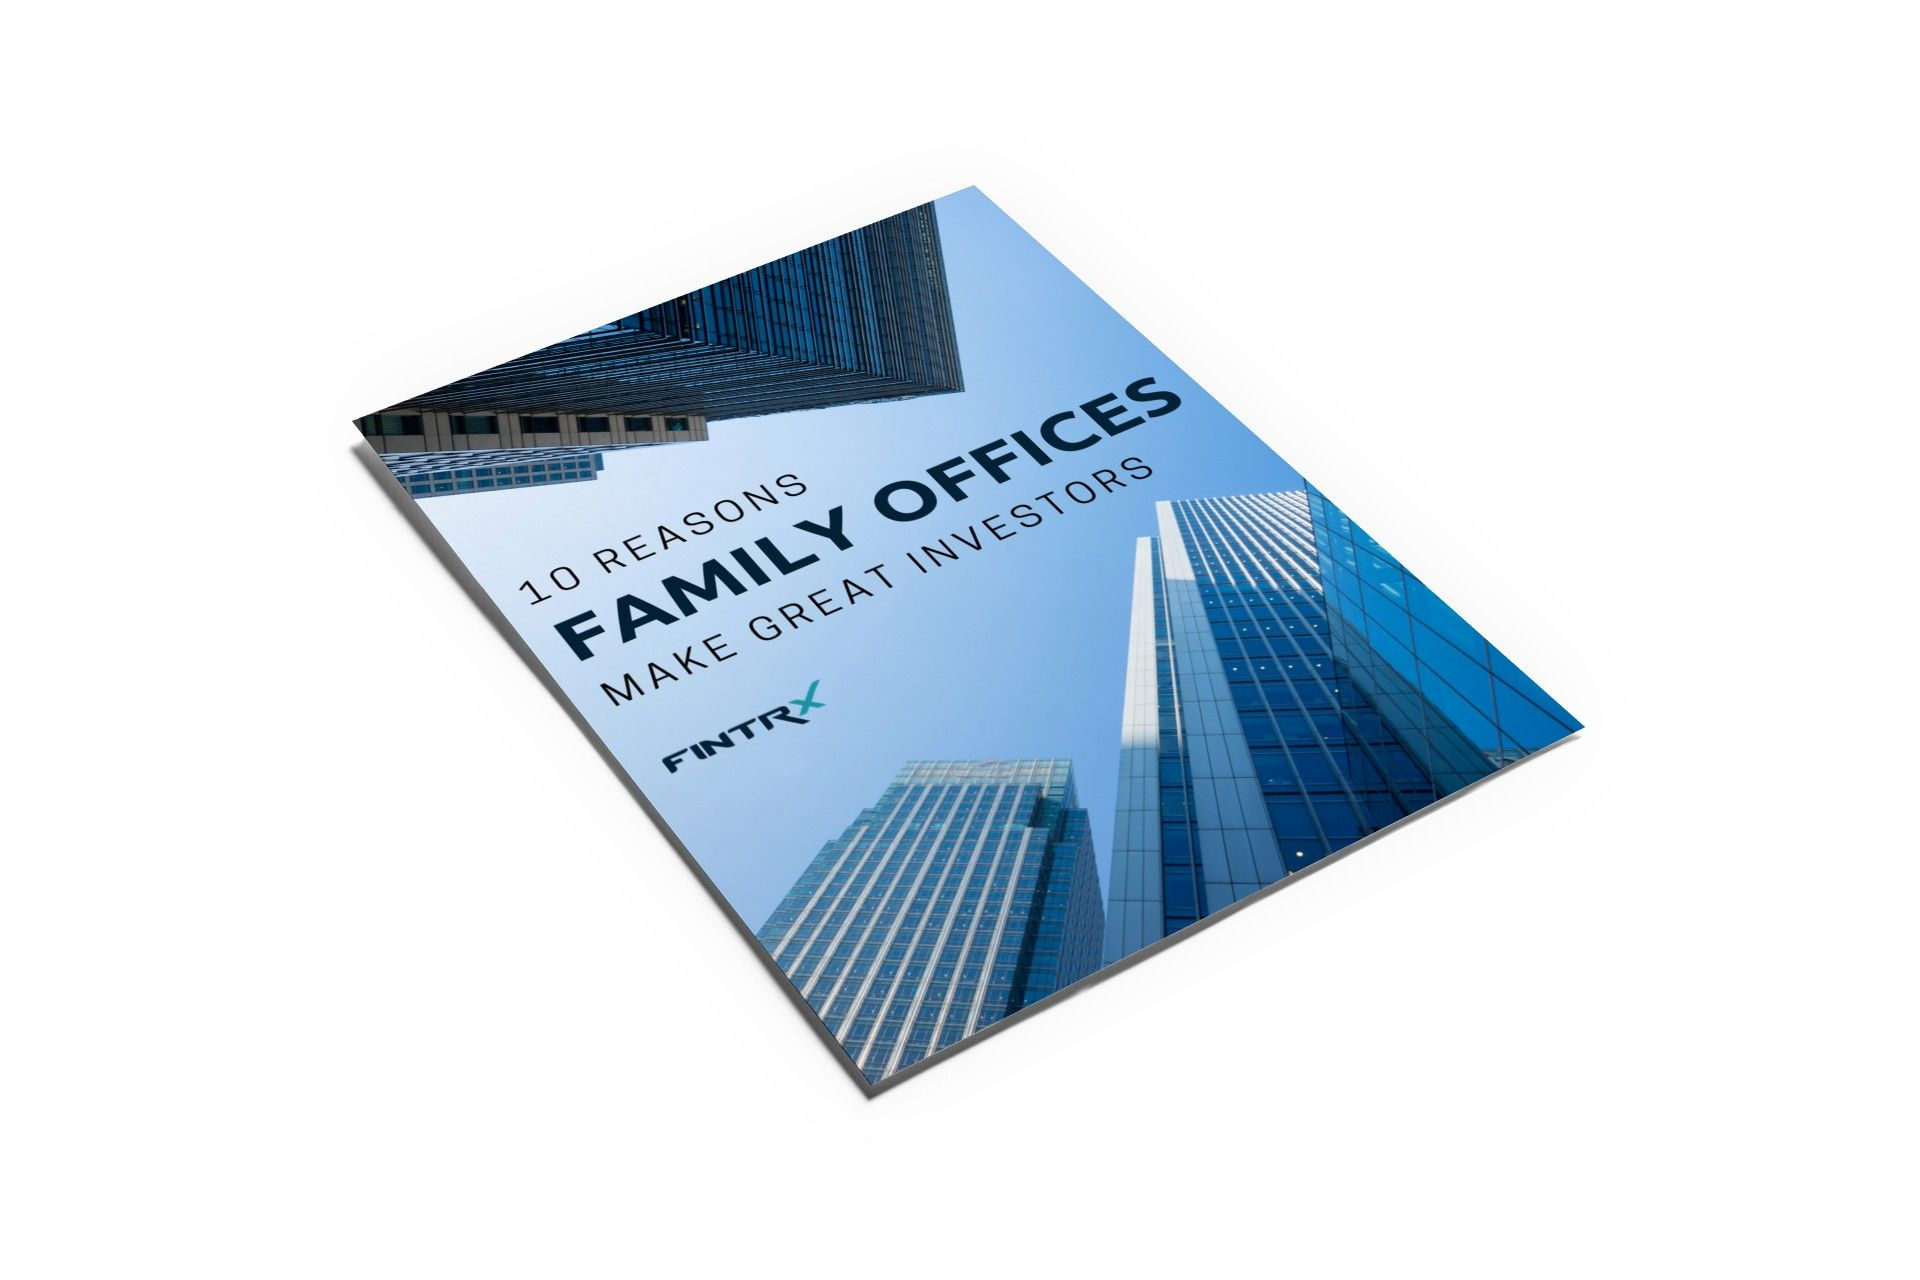 10_reasons_family_offices_make_great_investors-1